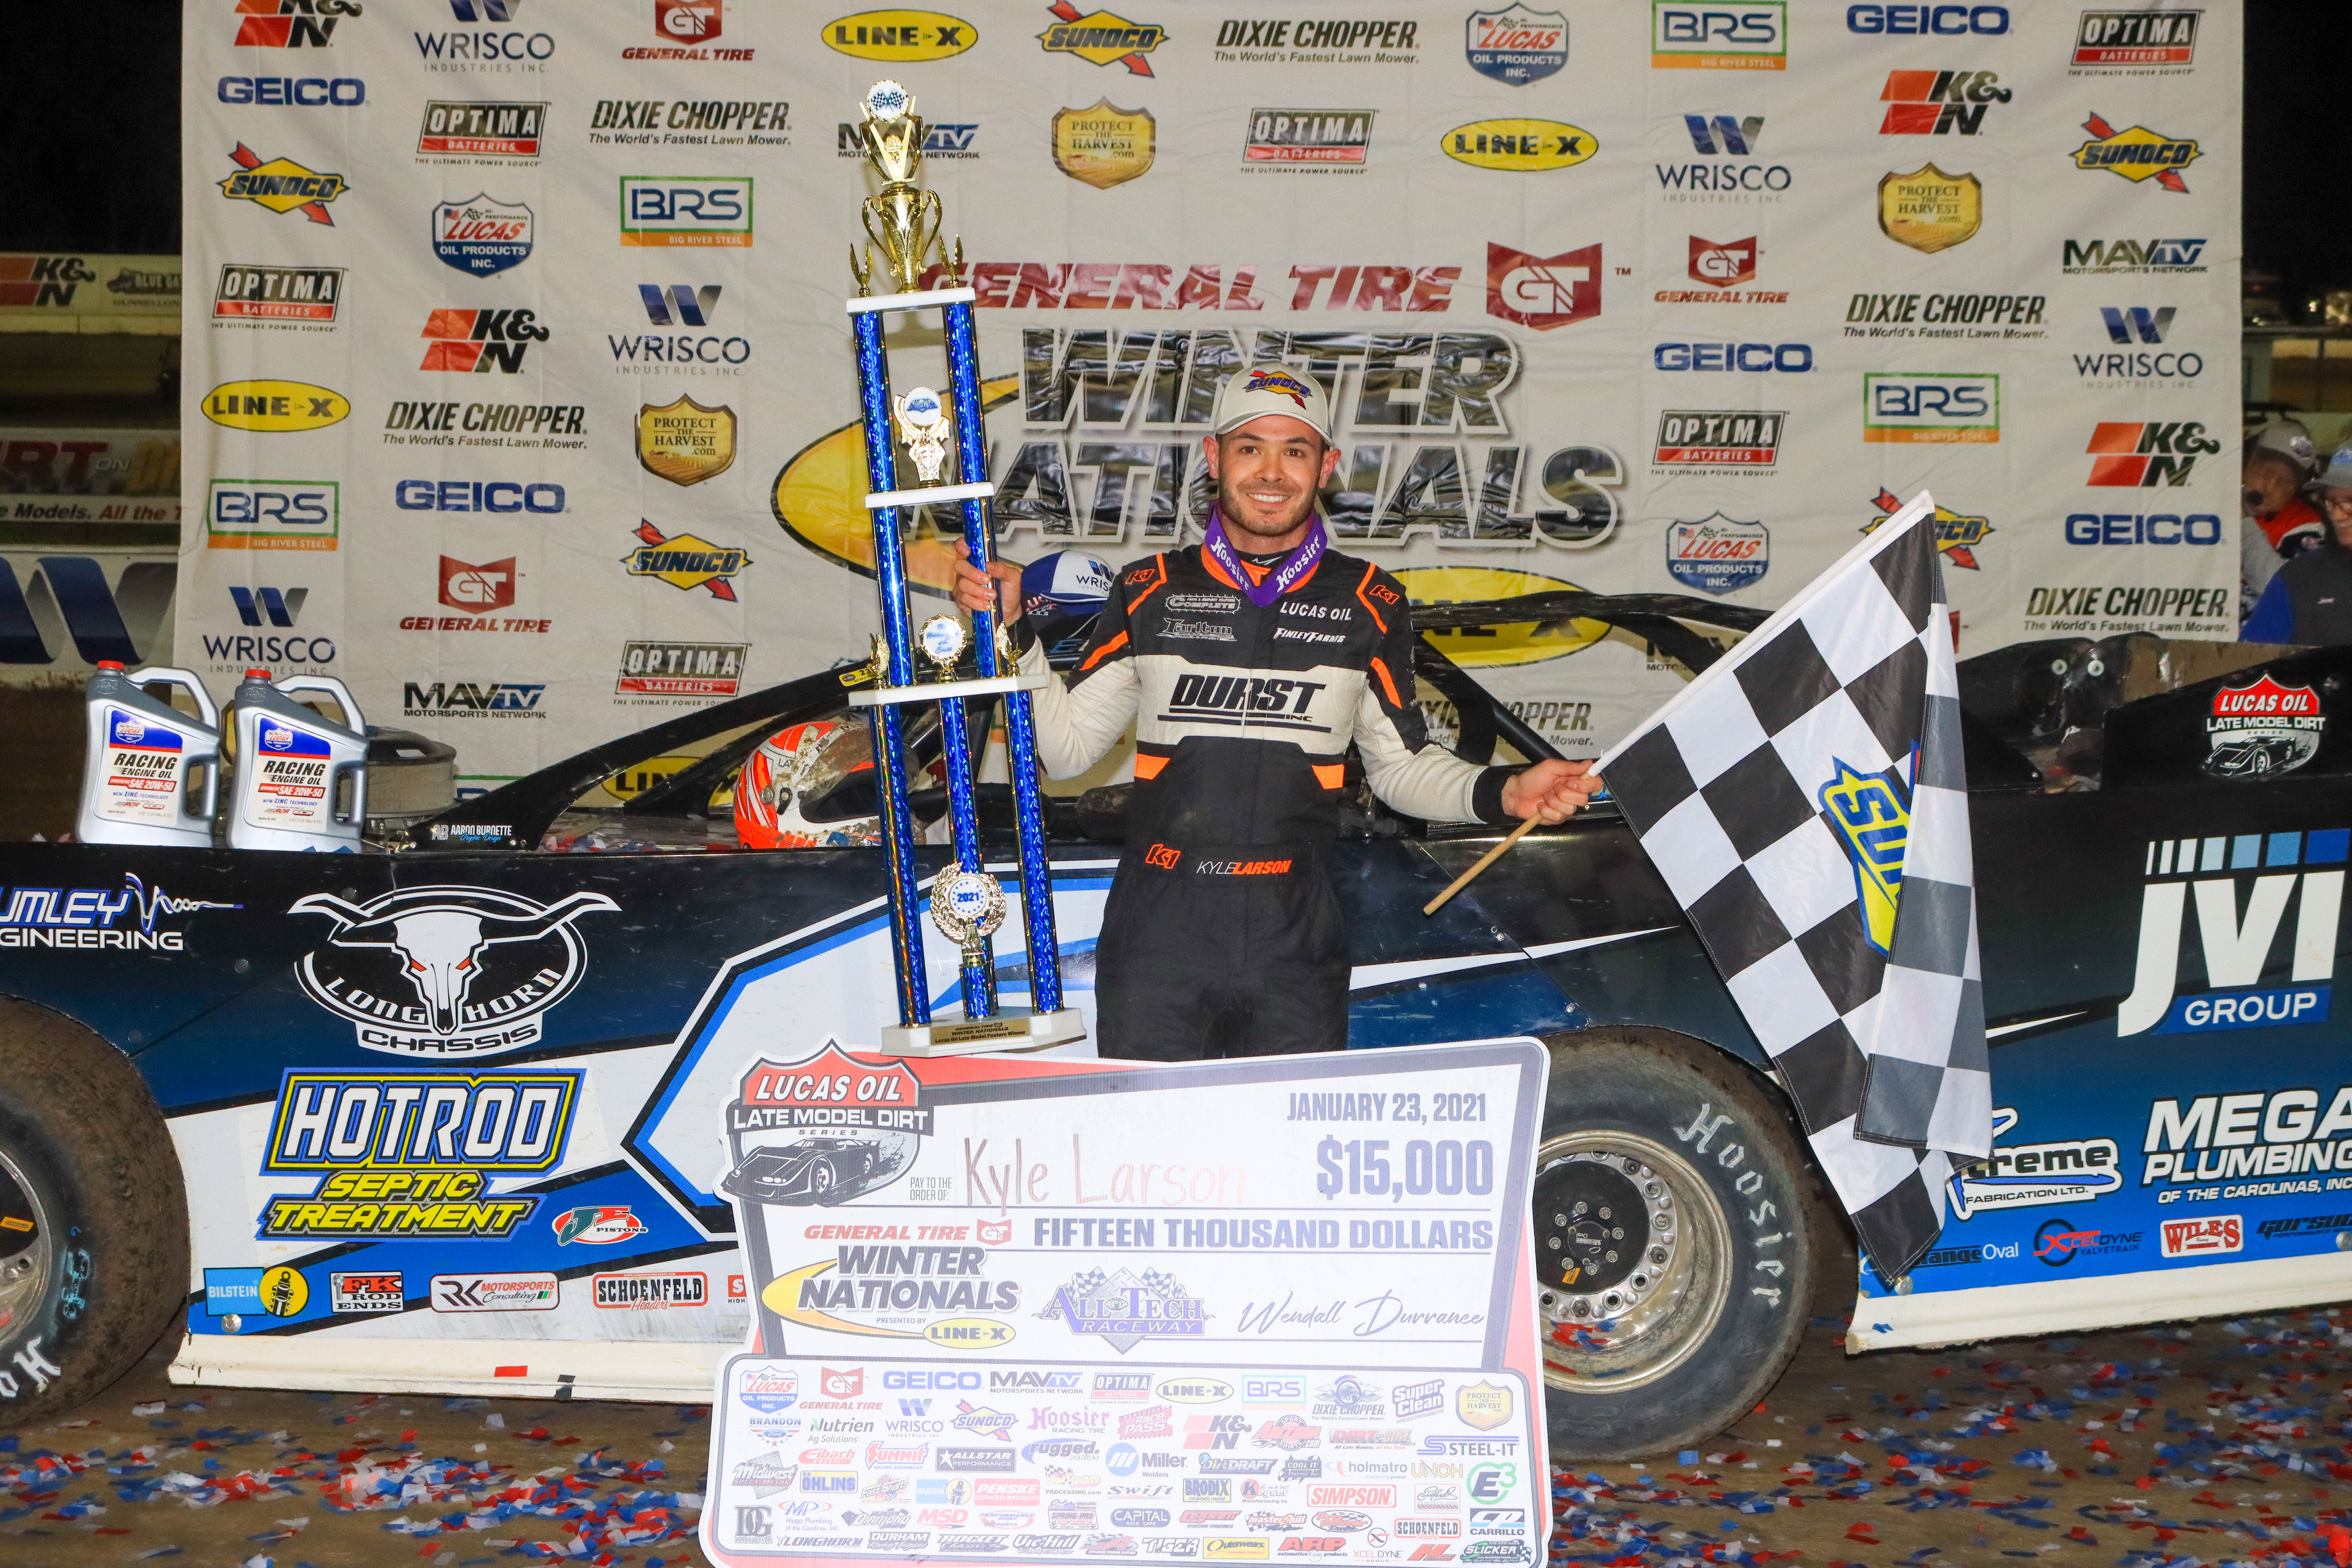 Kyle Larson poses with the first-place trophy after winning the General Tire Winter Nationals at All-Tech Raceway on Saturday night. Larson received a prize of $15,000. (LOVIN' DIRTY PHOTOGRAPHY )